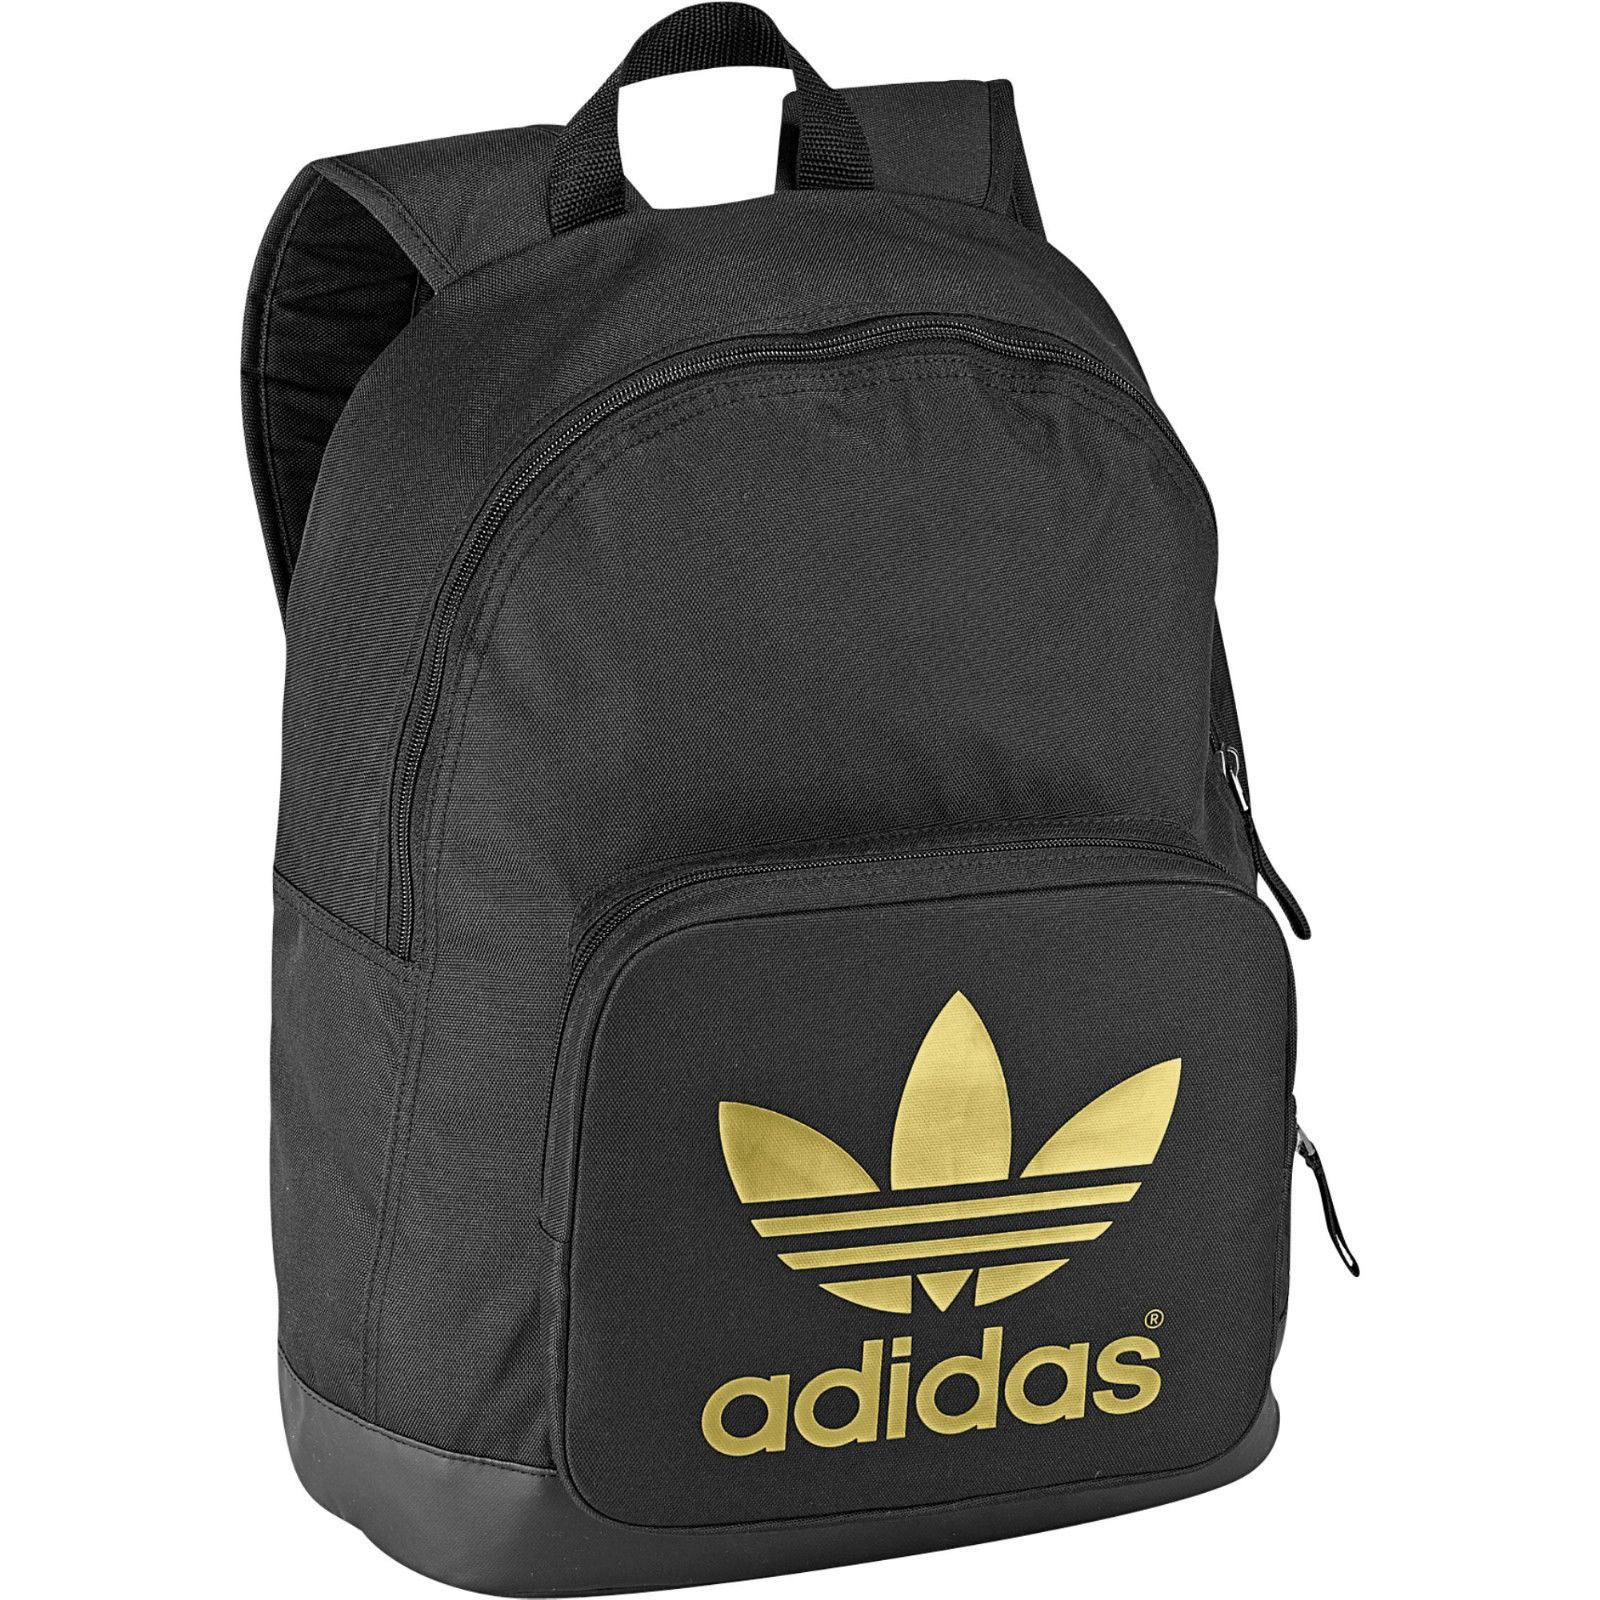 adidas originals backpacks mens boys girls adidas school backbags